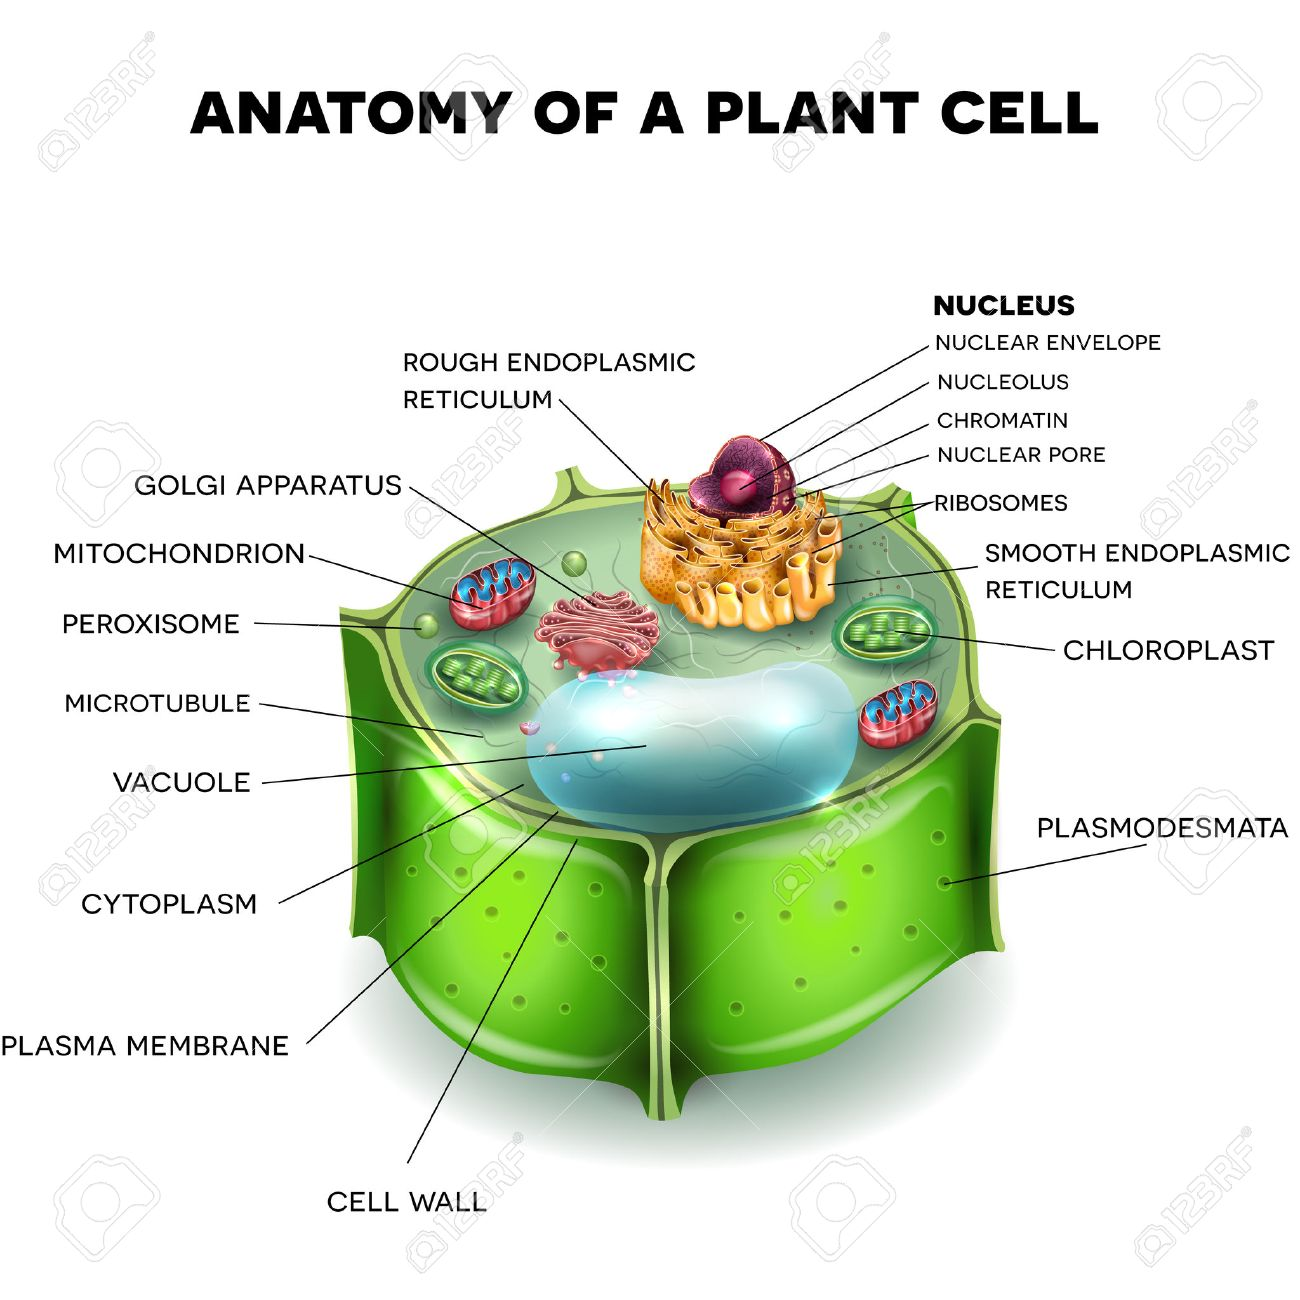 plant cell structure cross section of the cell detailed colorful rh 123rf com Labled Plant Cell Diagram Labled Plant Cell Diagram